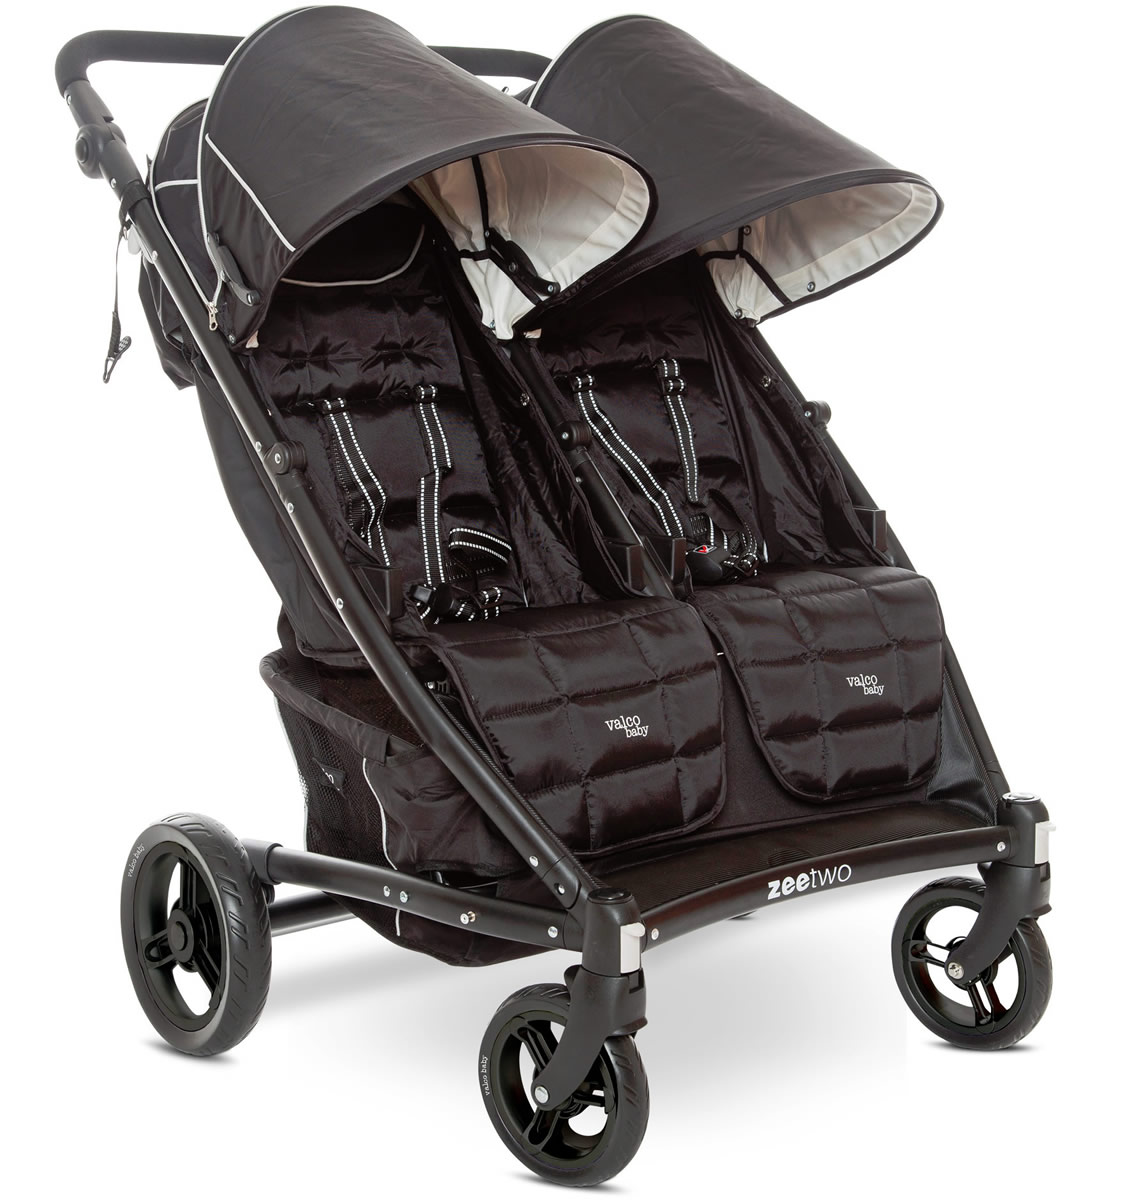 Carriage Type Strollers Strollers Archives Counttheworld